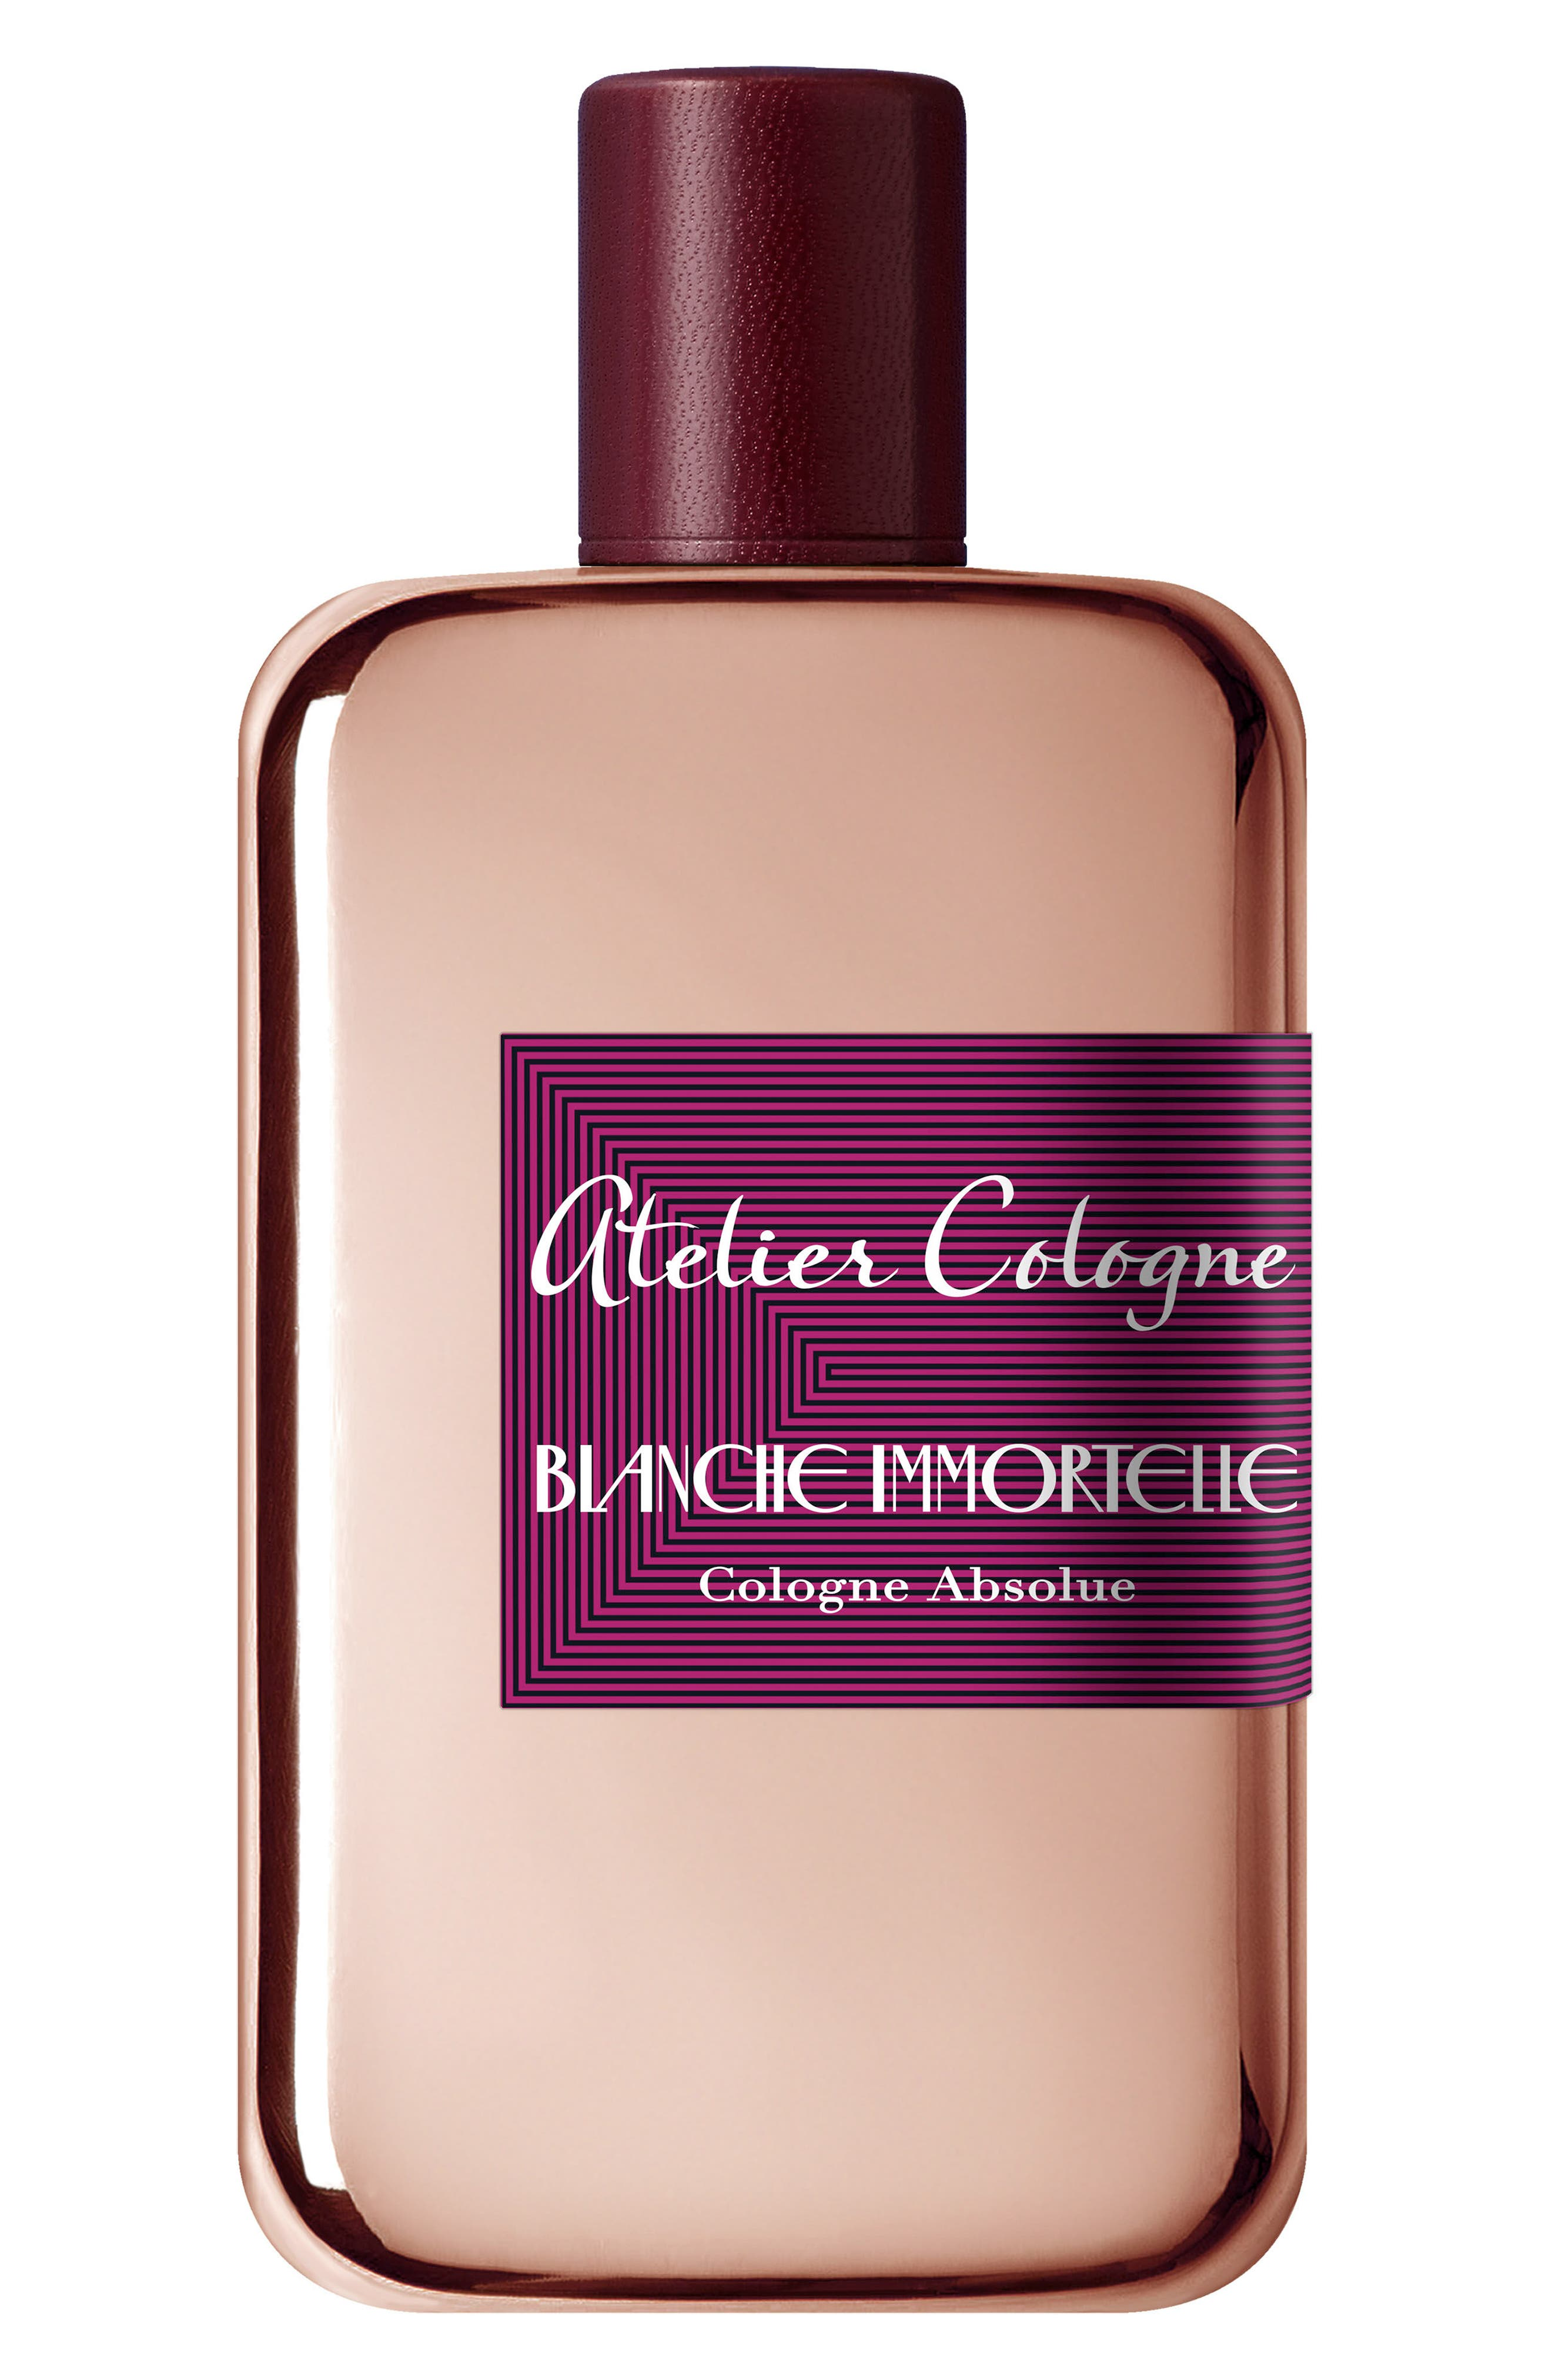 Blanche Immortelle Cologne Absolue,                         Main,                         color, No Color